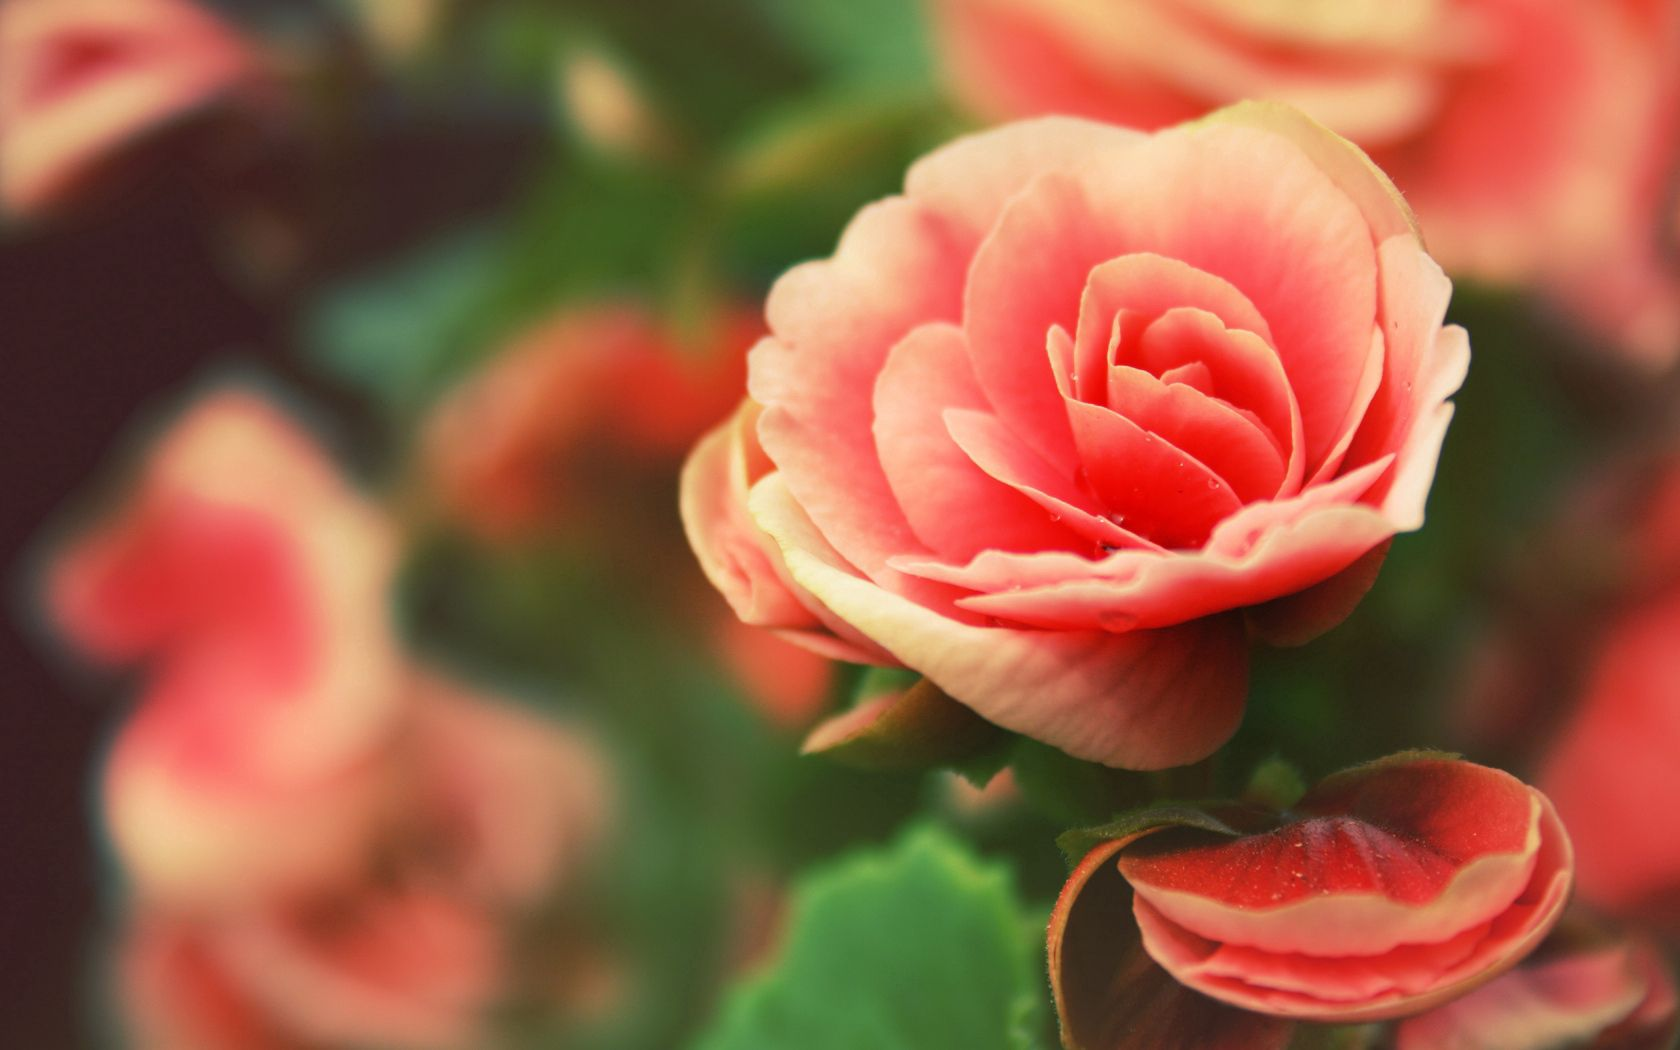 135120 download wallpaper Macro, Rose Flower, Rose, Petals, Drops, Flowers screensavers and pictures for free